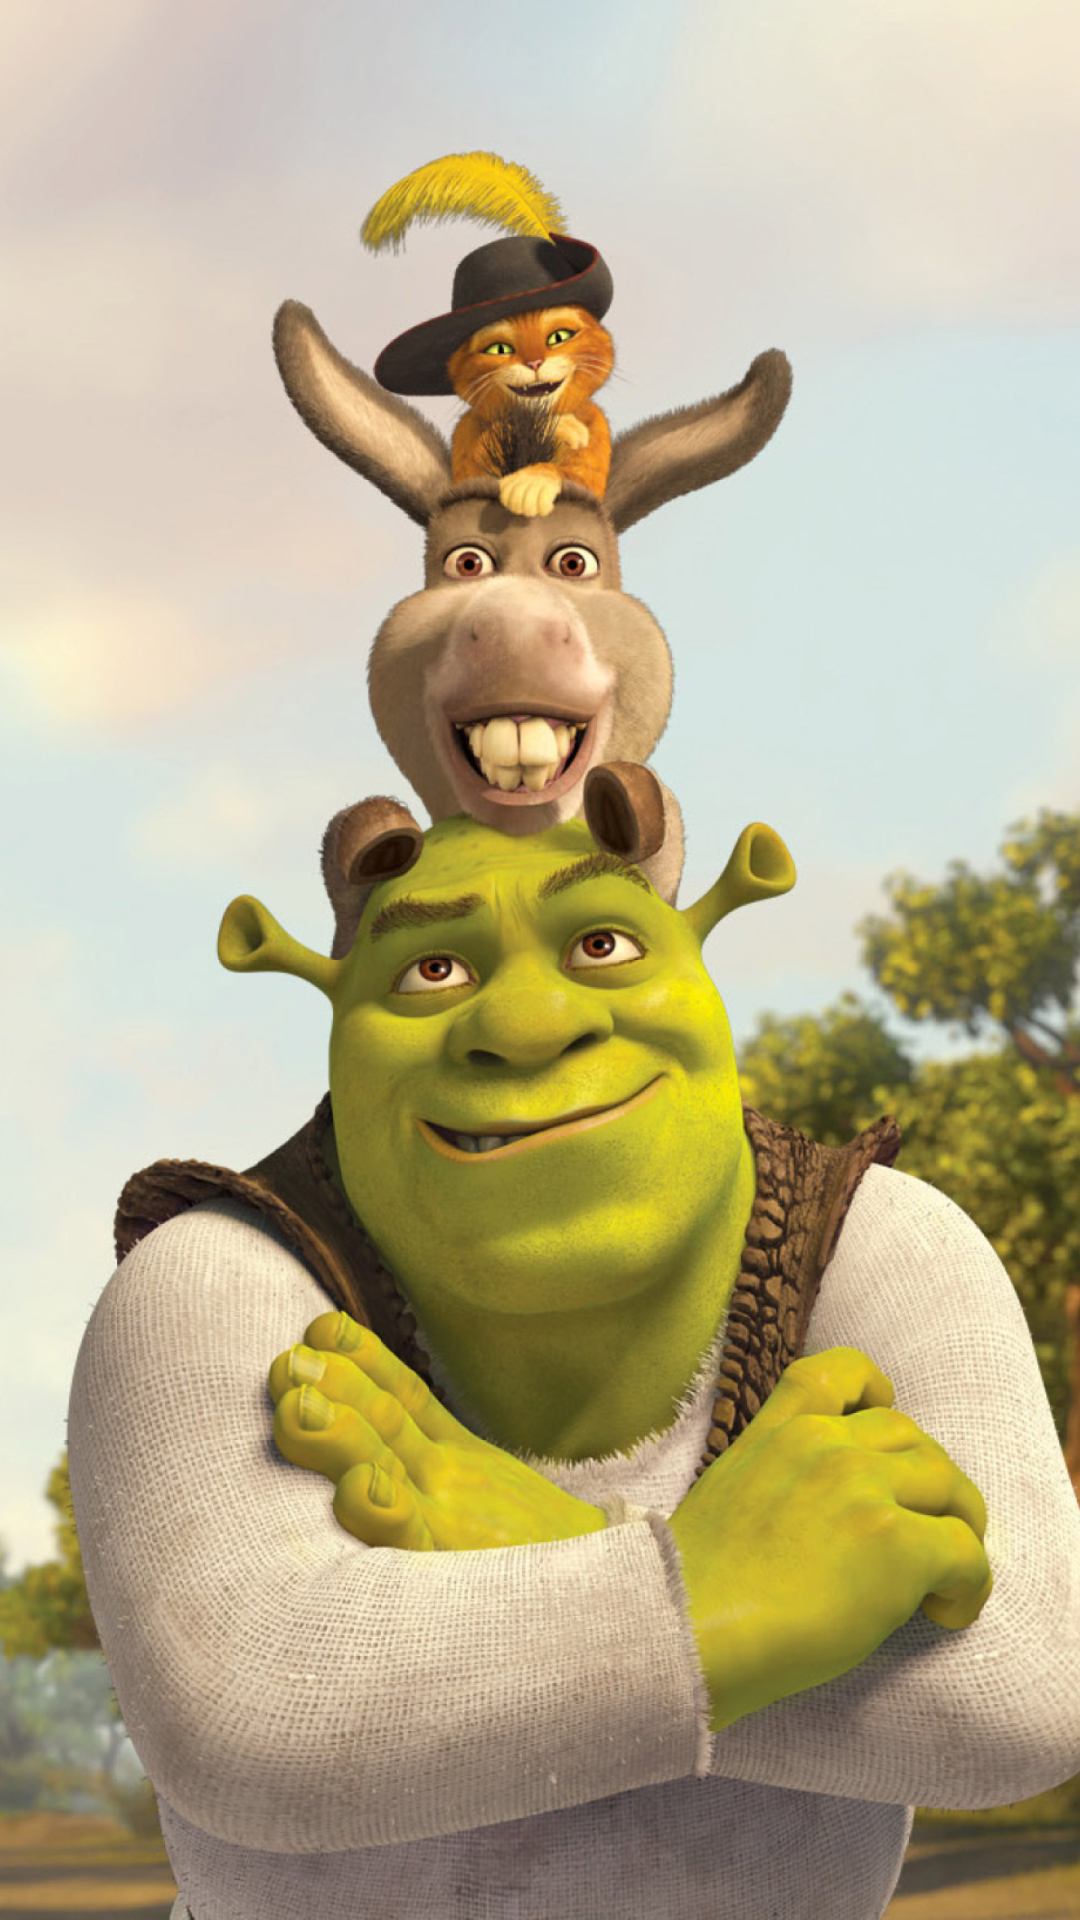 Shrek Donkey Puss In Boots Wallpaper for 1080x1920 Field Of Daisies